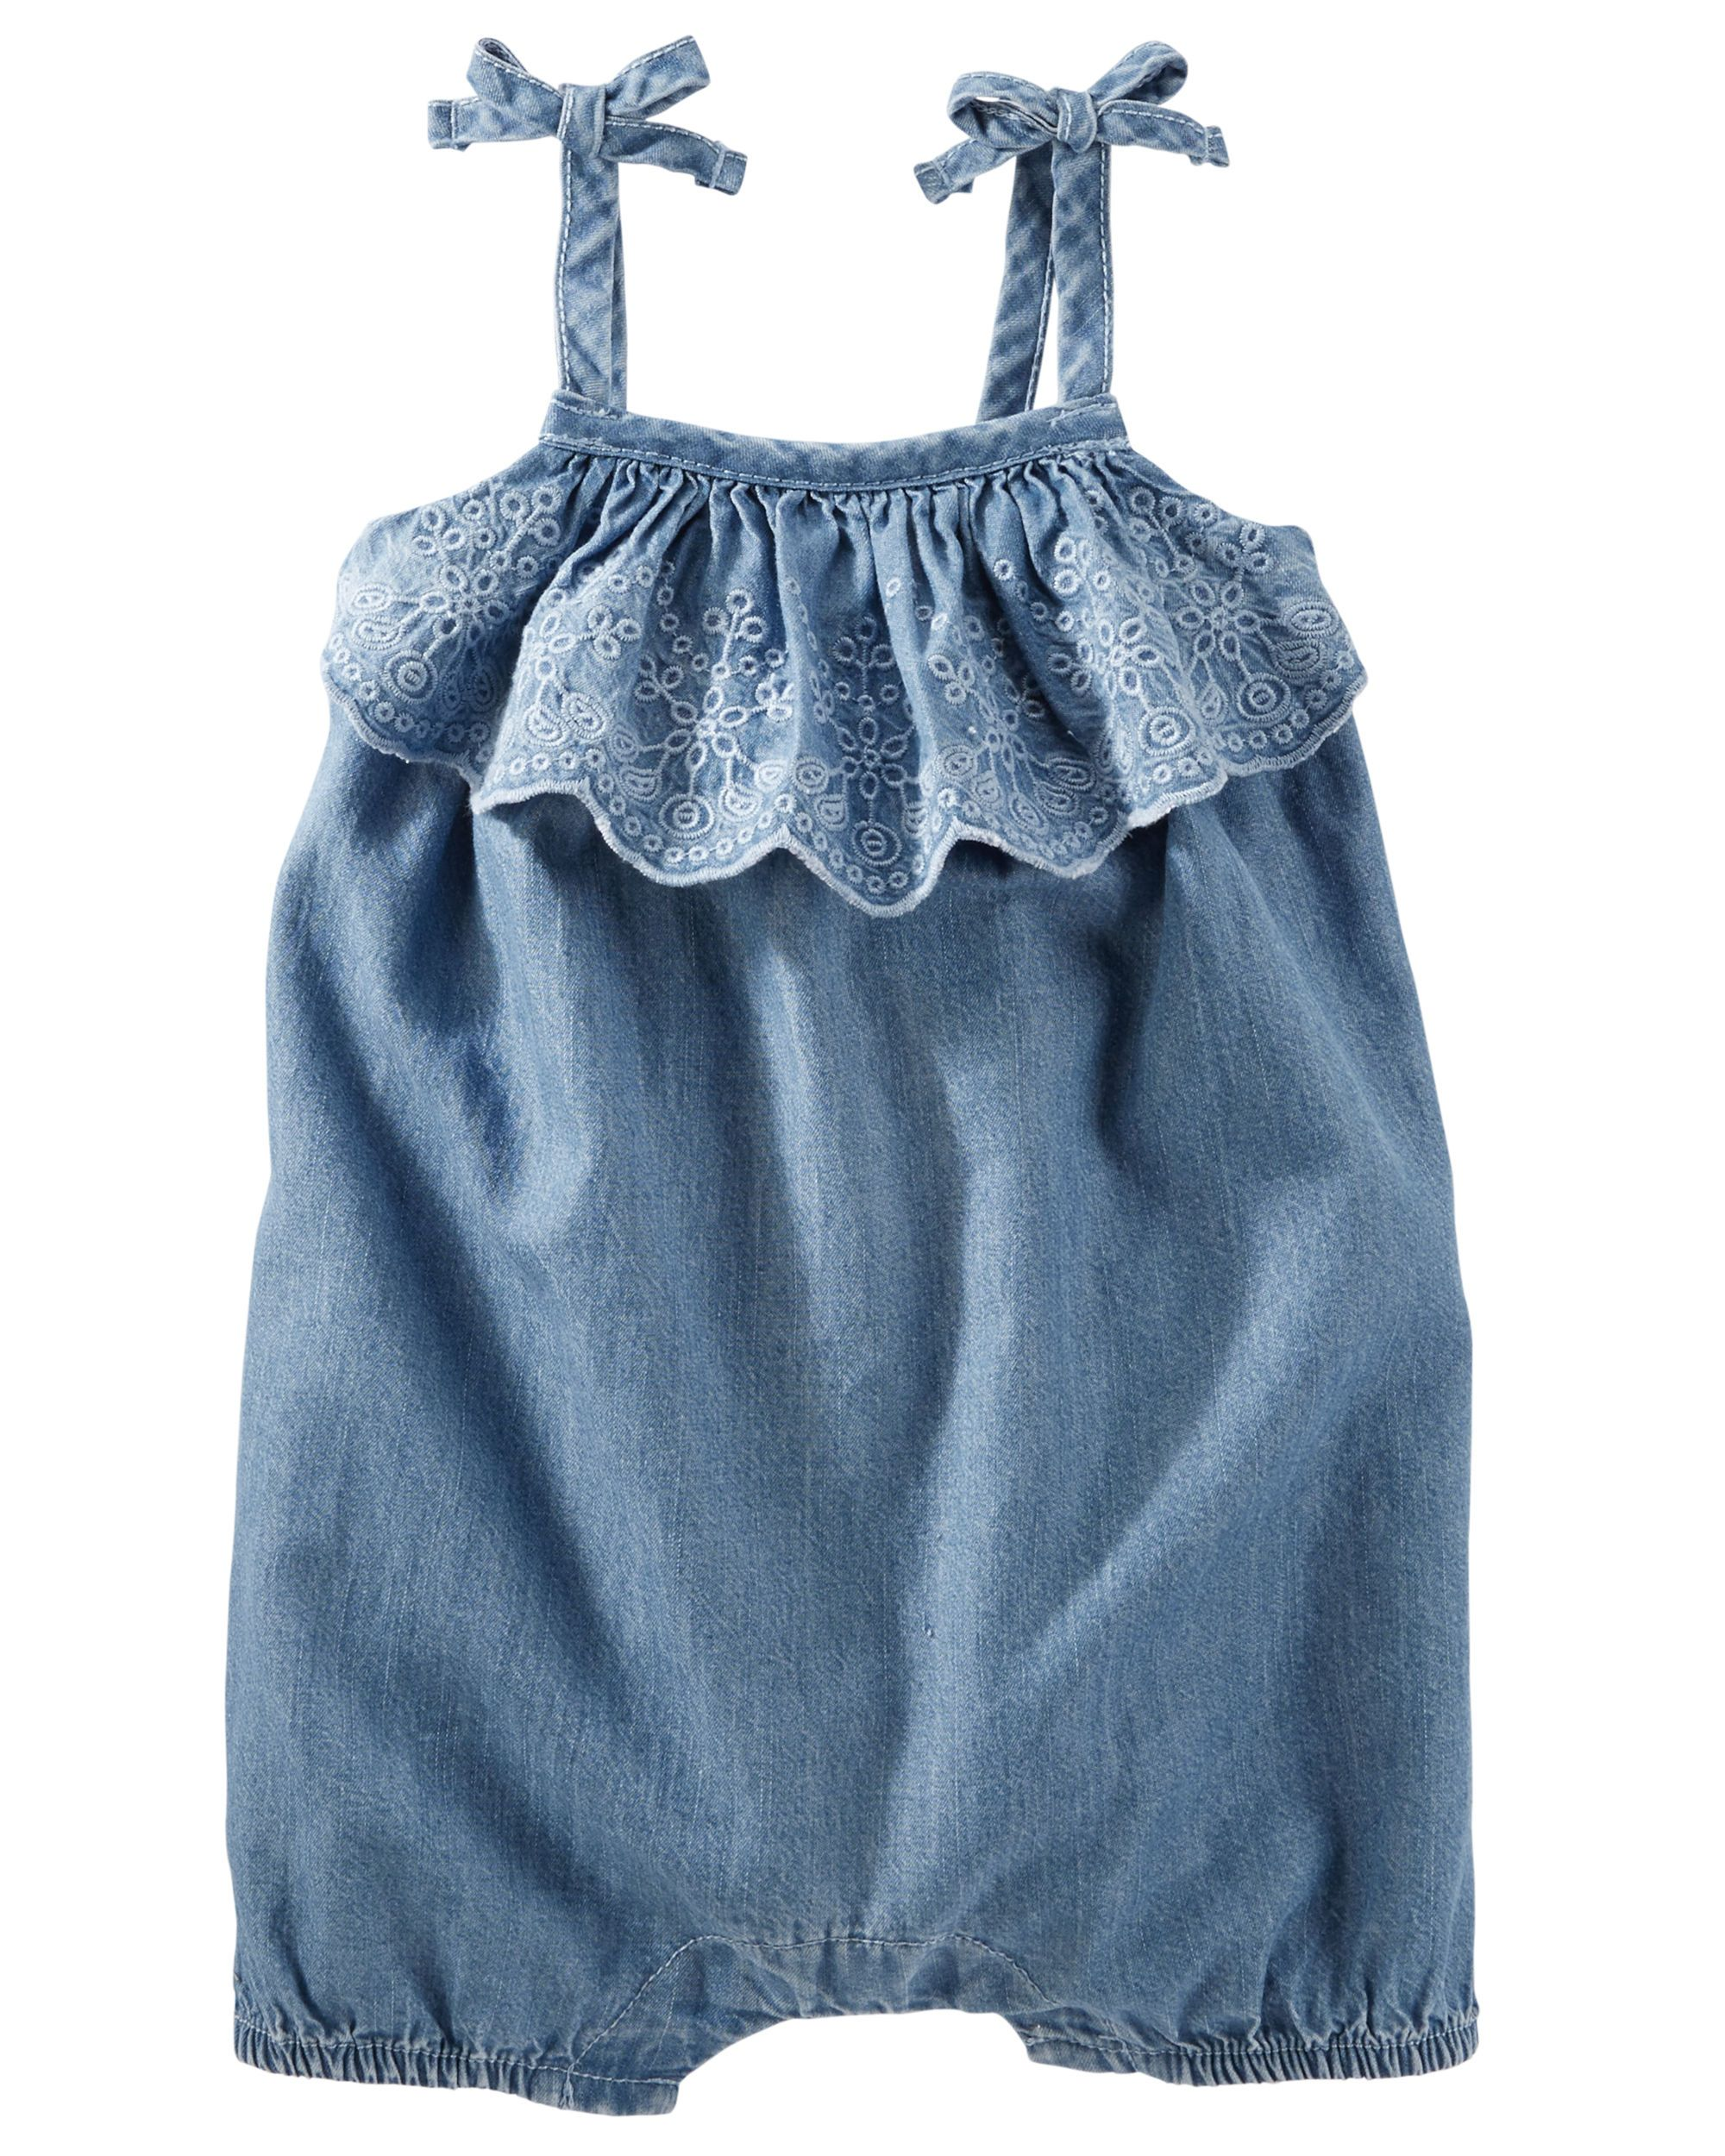 Baby Girl Eyelet Ruffle Chambray Romper. With eyelet embroidered ruffles, scalloped edges and tacked bows, it's the little details that make this chambray romper sweet for spring.